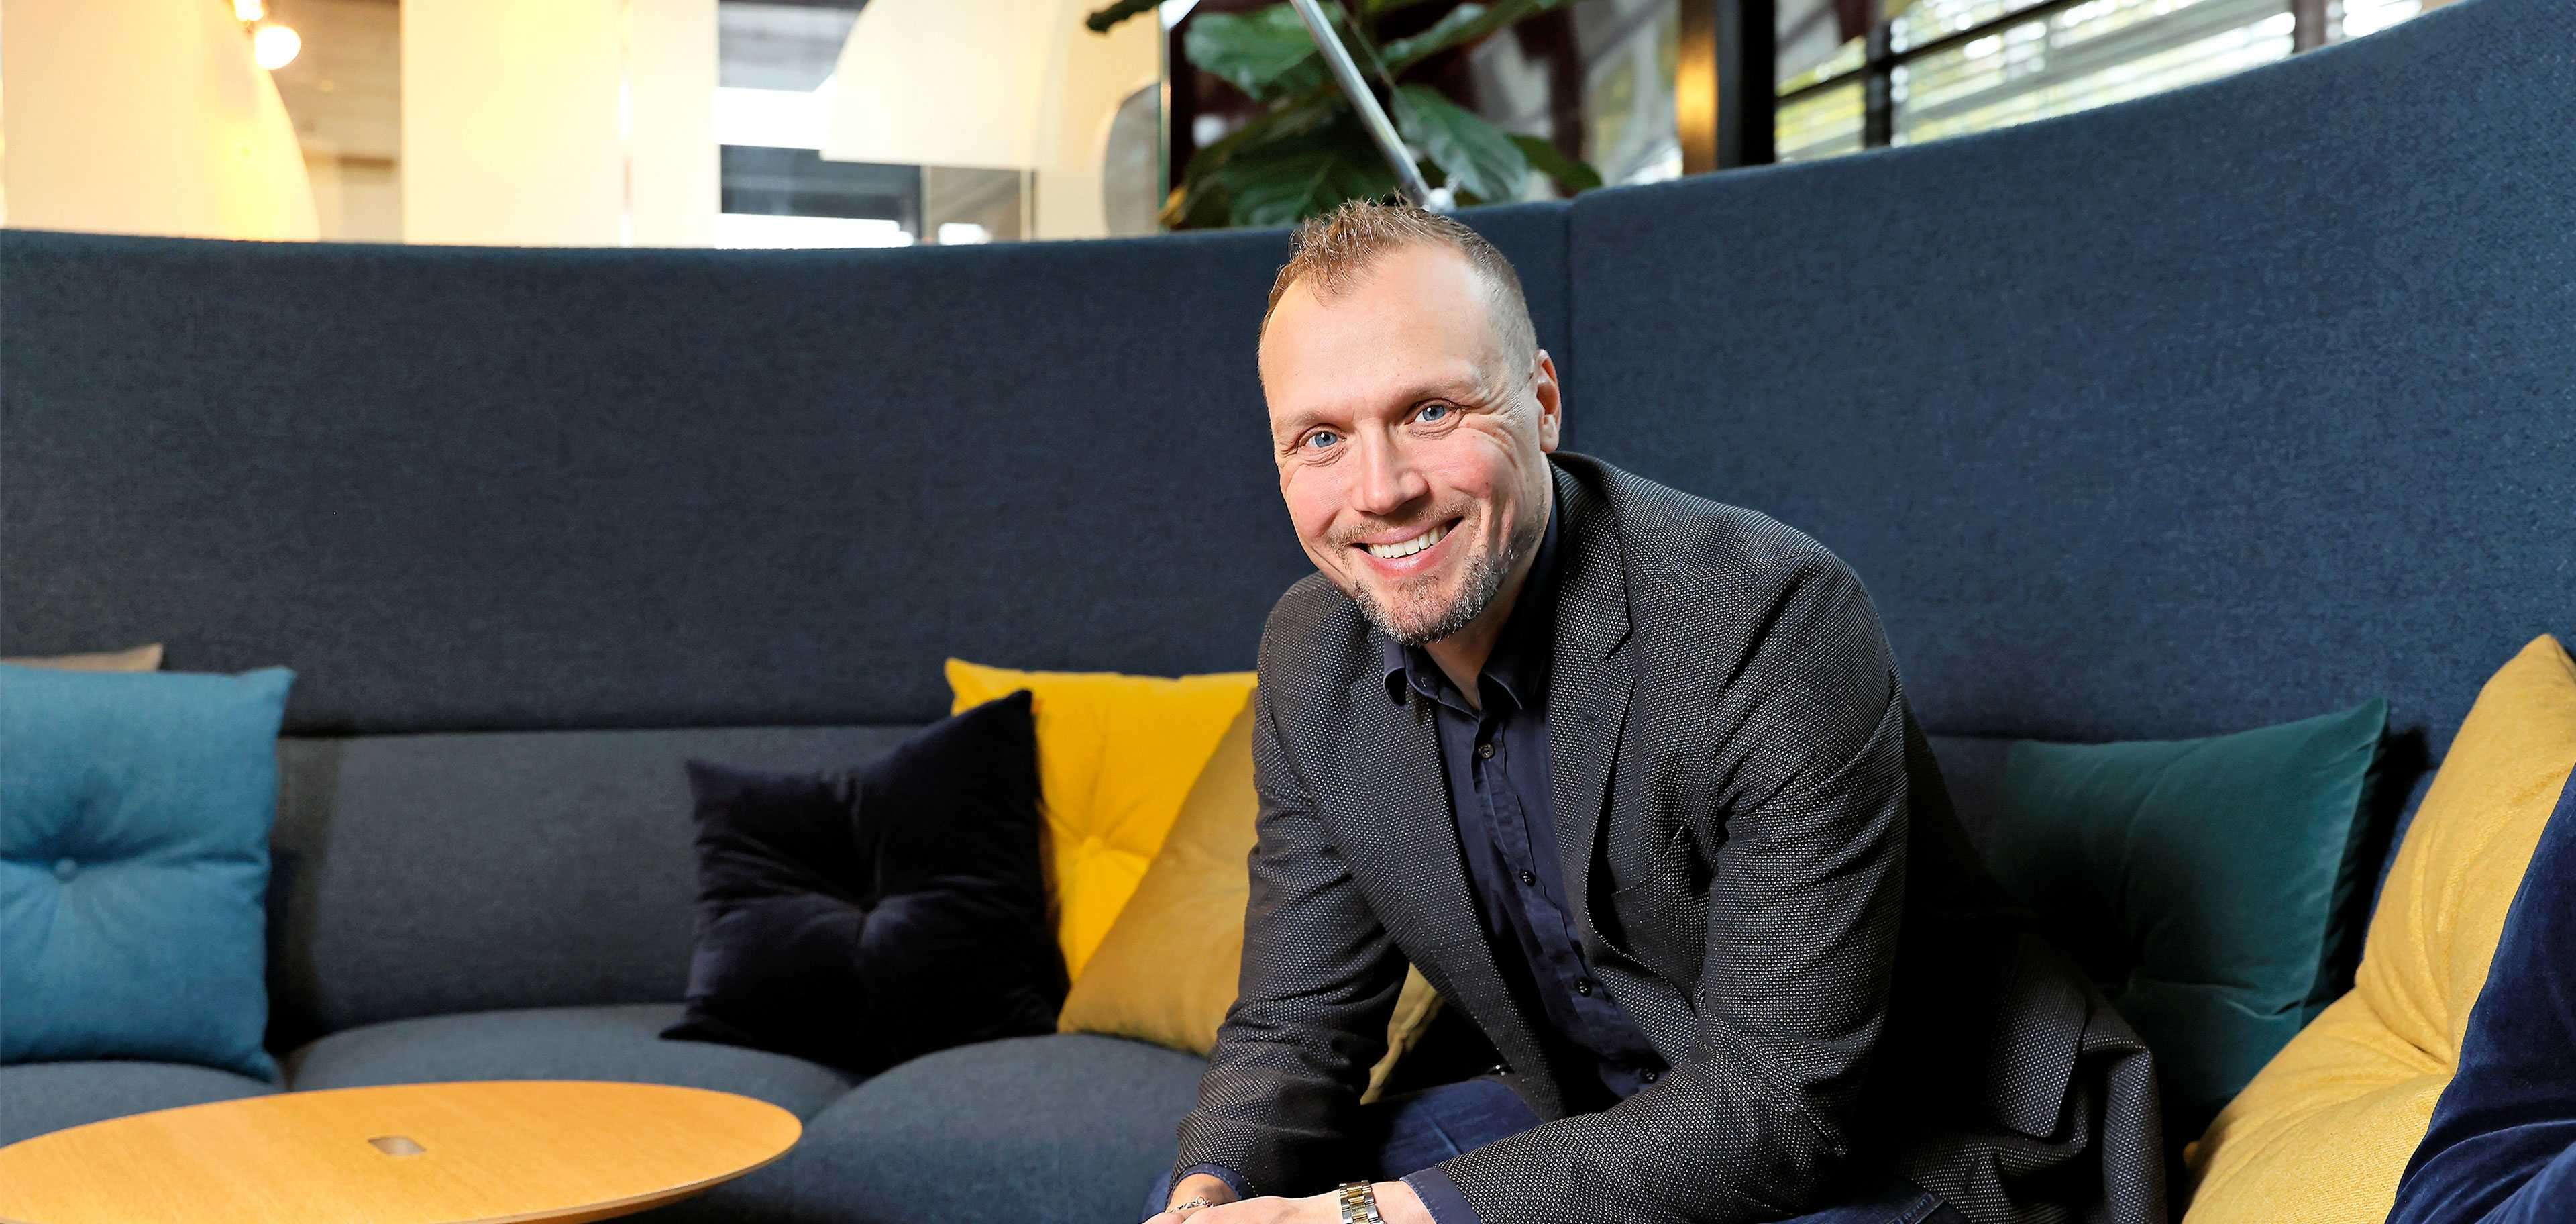 Martela's CEO Artti Aurasmaa sitting on a sofa